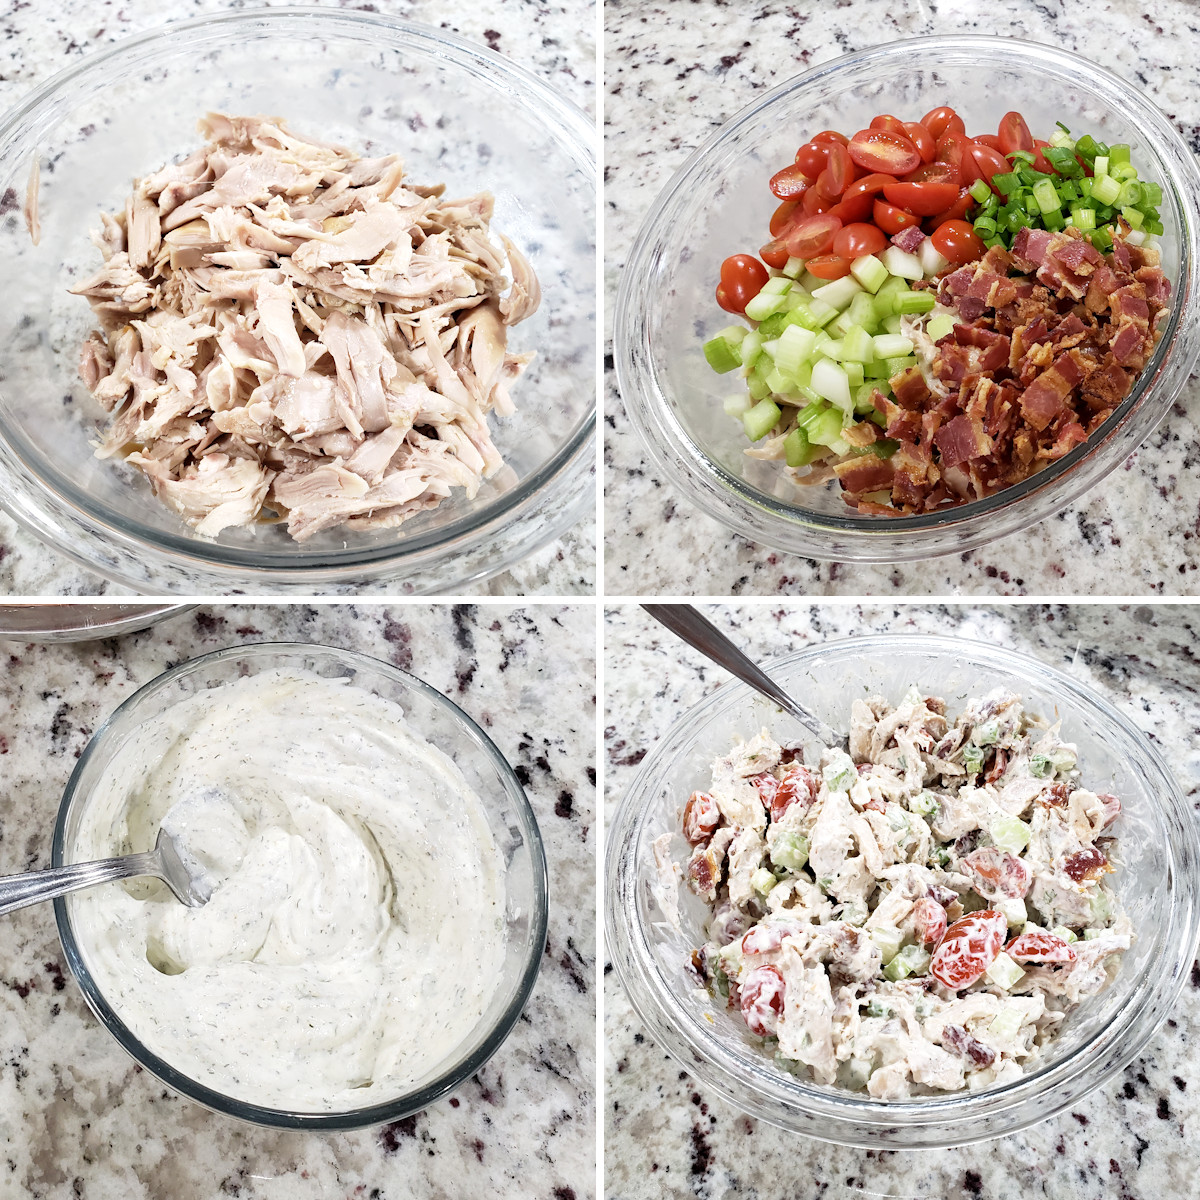 Mixing BLT chicken salad together.